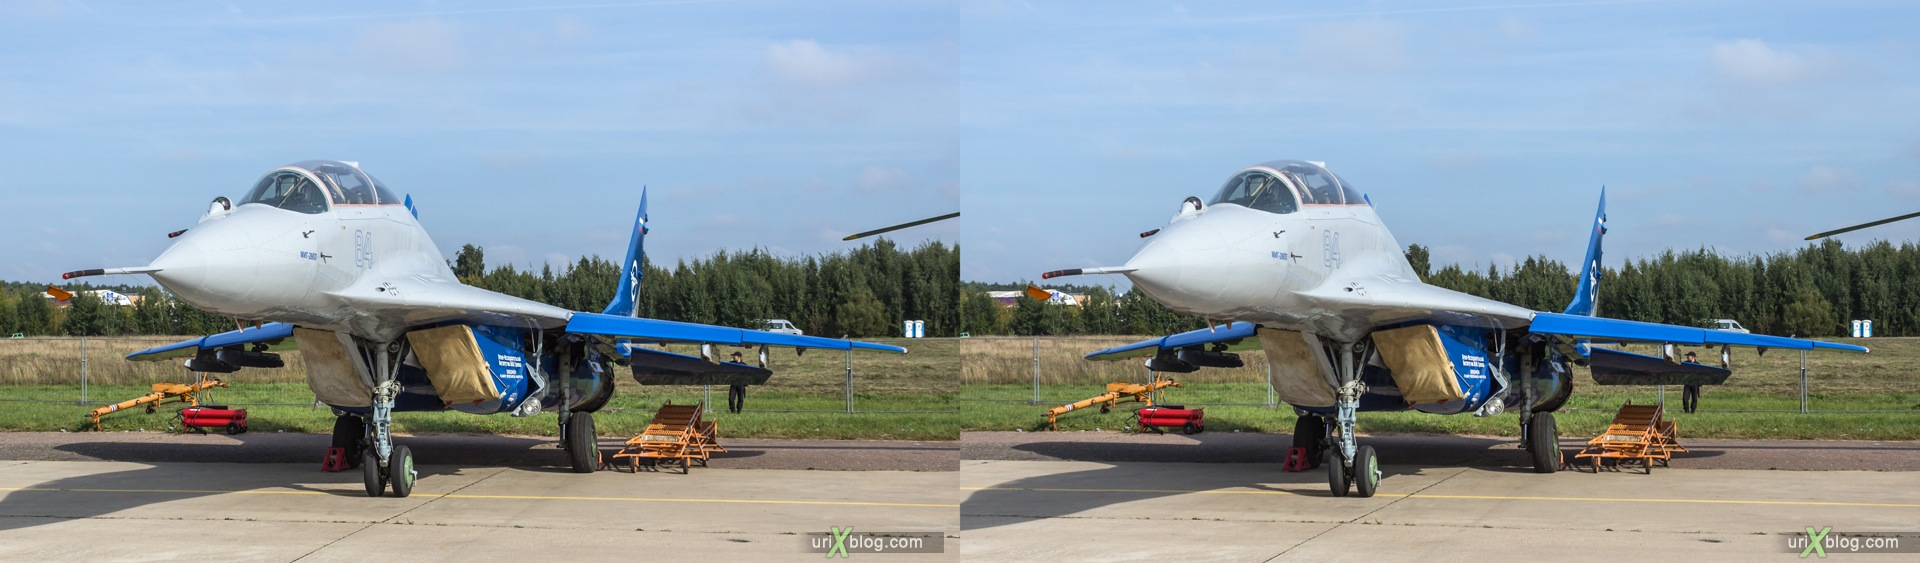 2013, MiG-29ЛЛ, MAKS, International Aviation and Space Salon, Russia, Soviet, USSR, Ramenskoye airfield, airplane, 3D, stereo pair, cross-eyed, crossview, cross view stereo pair, stereoscopic